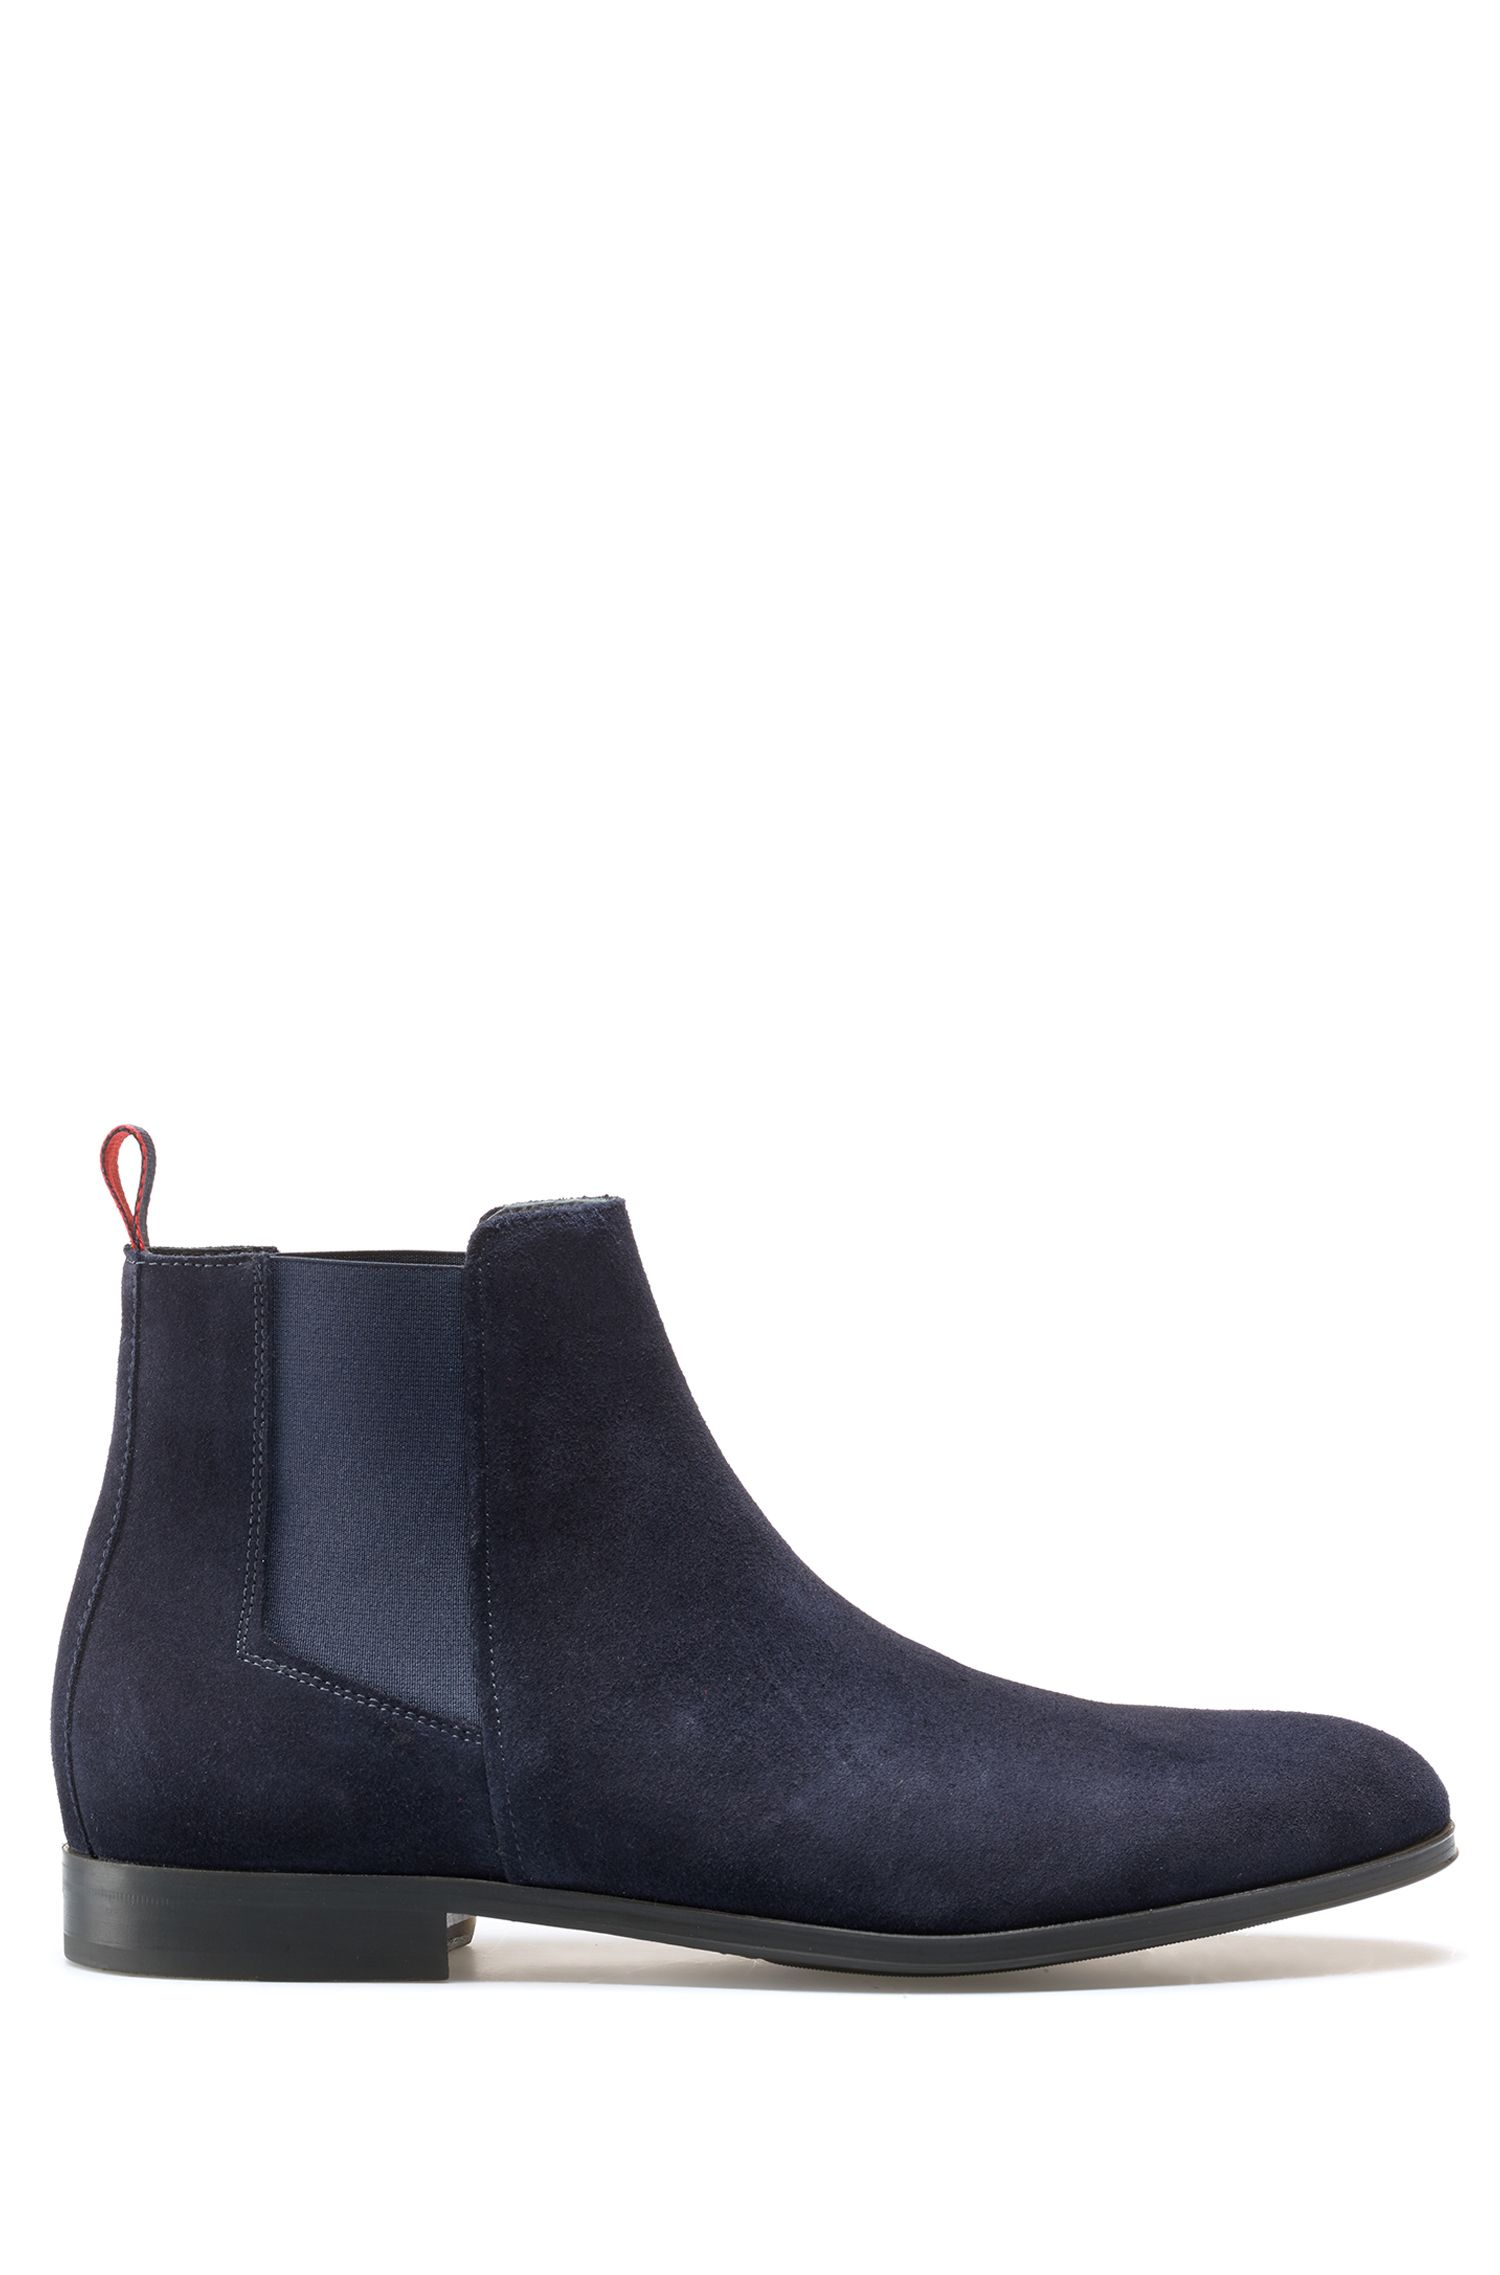 Rubber-soled Chelsea boots in suede leather, Dark Blue